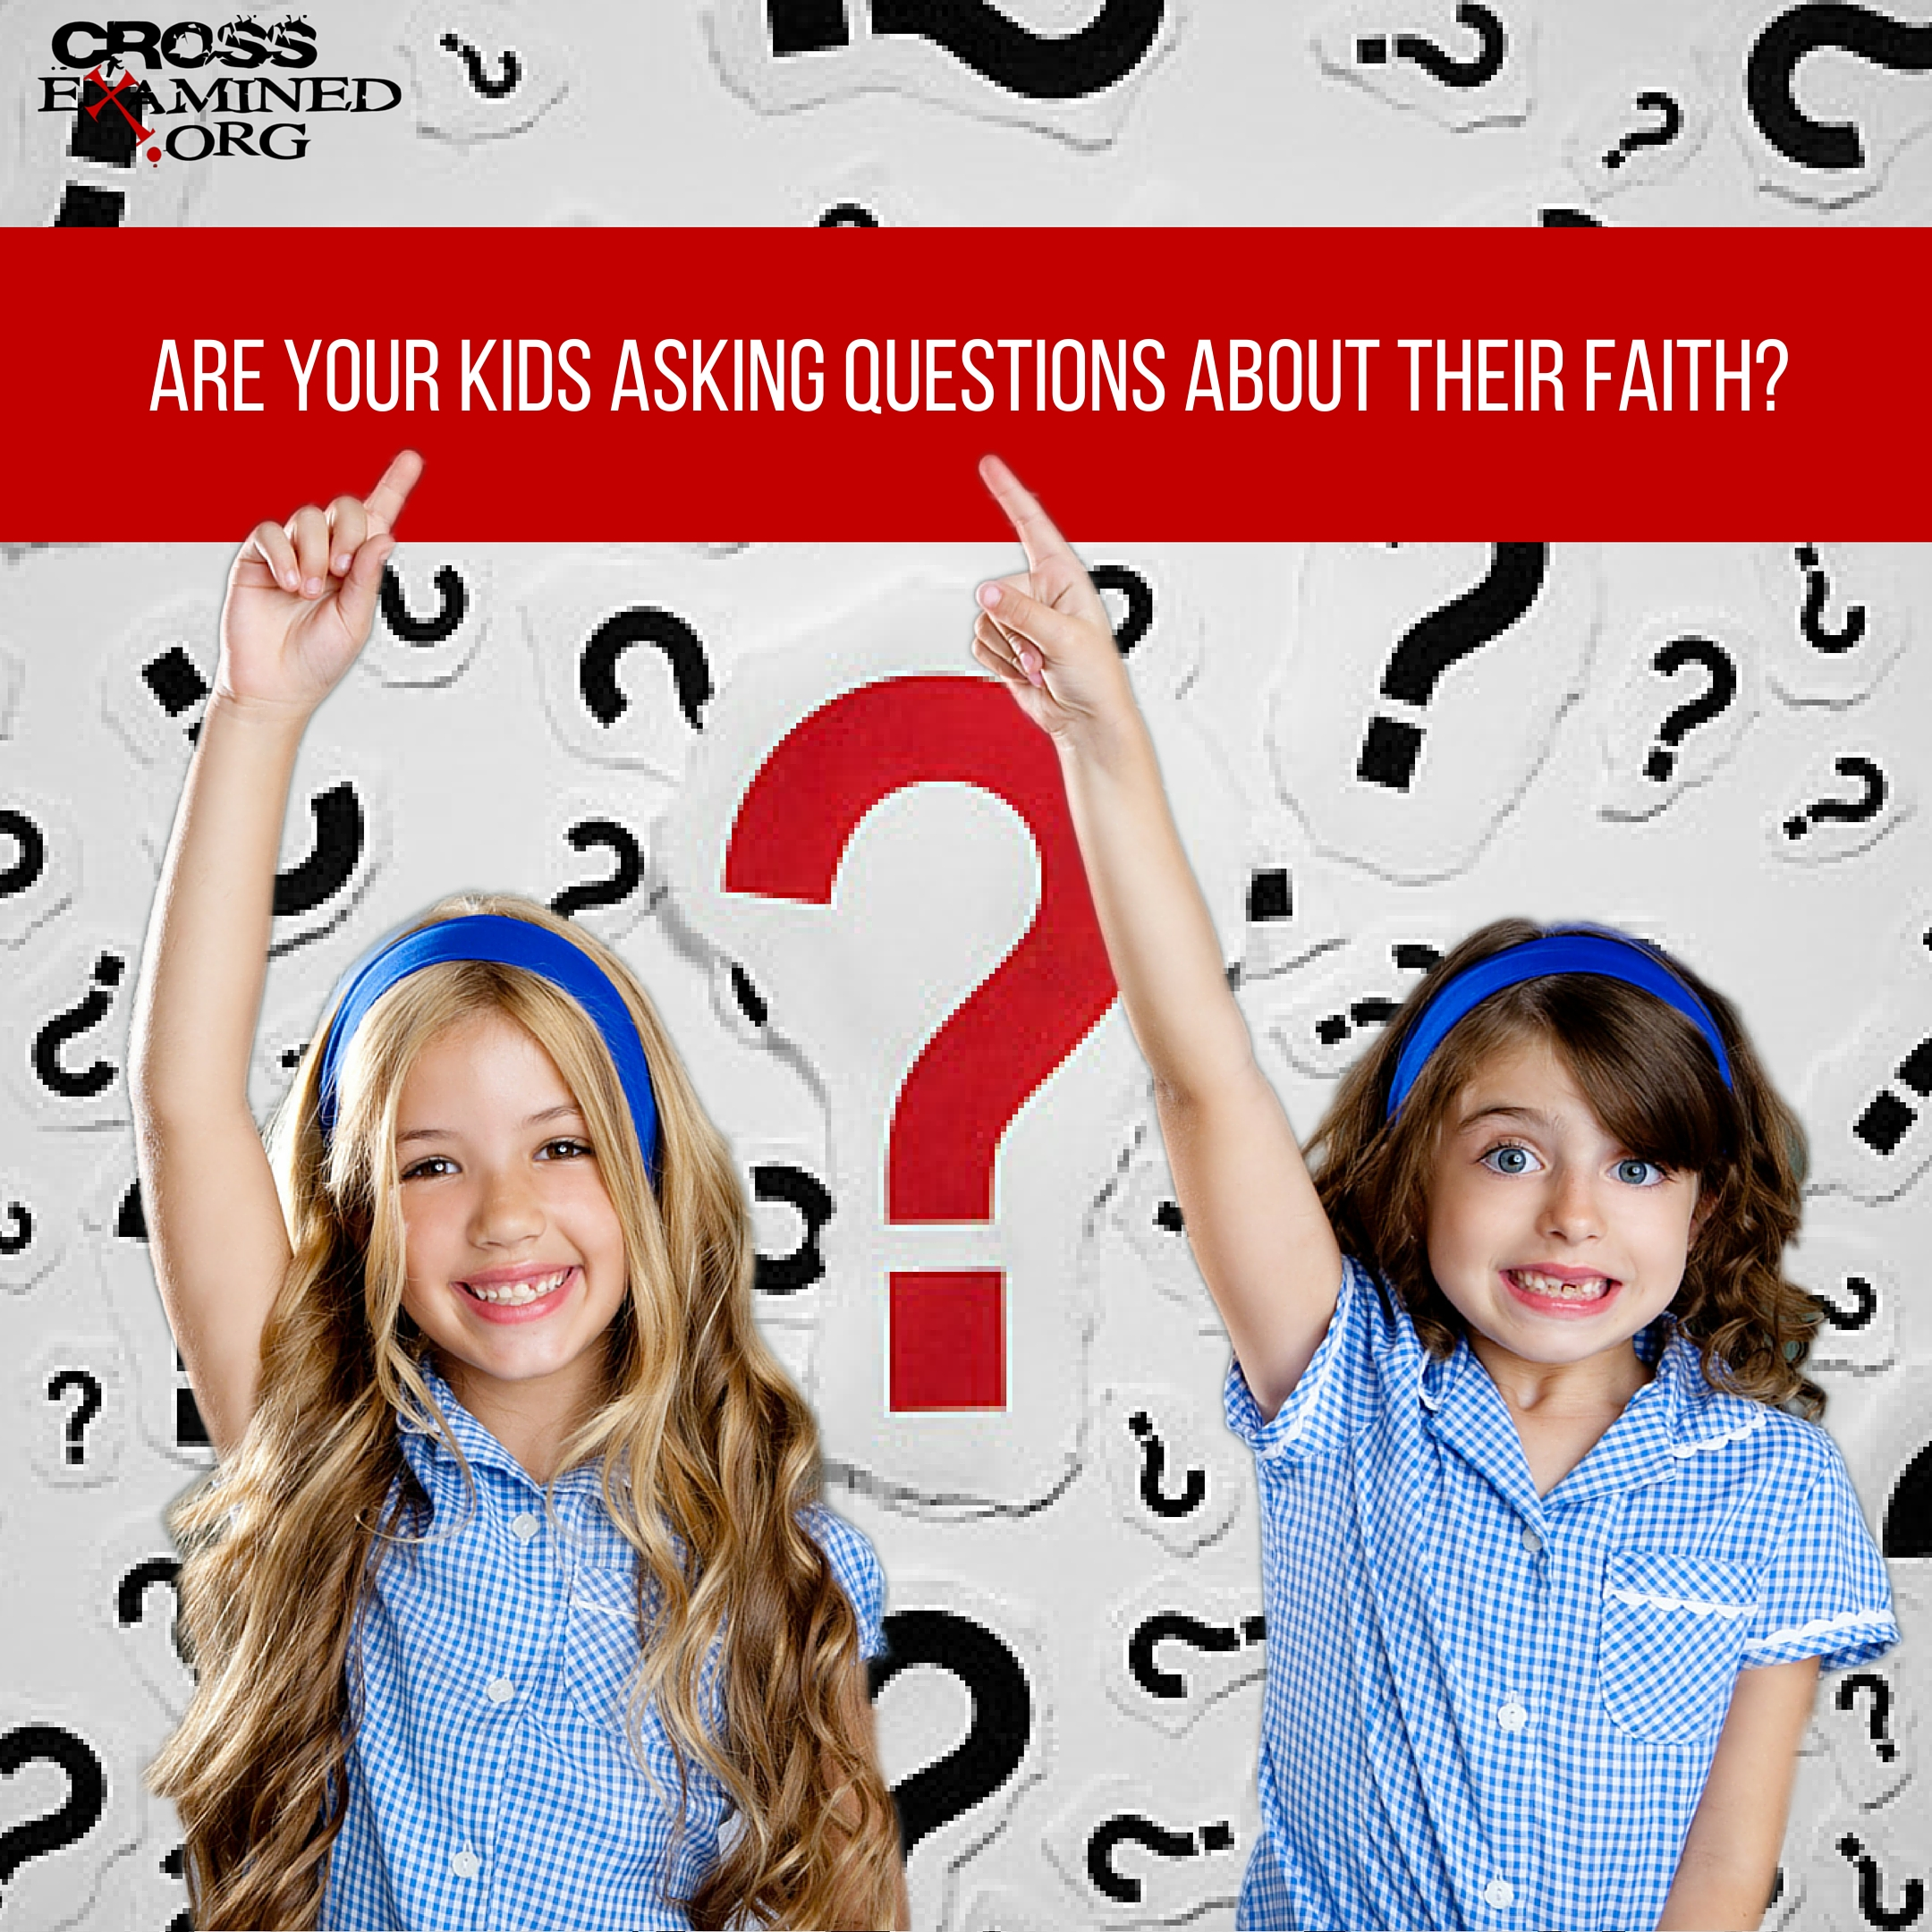 How to Get Your Kids to Ask More Questions About Their Faith